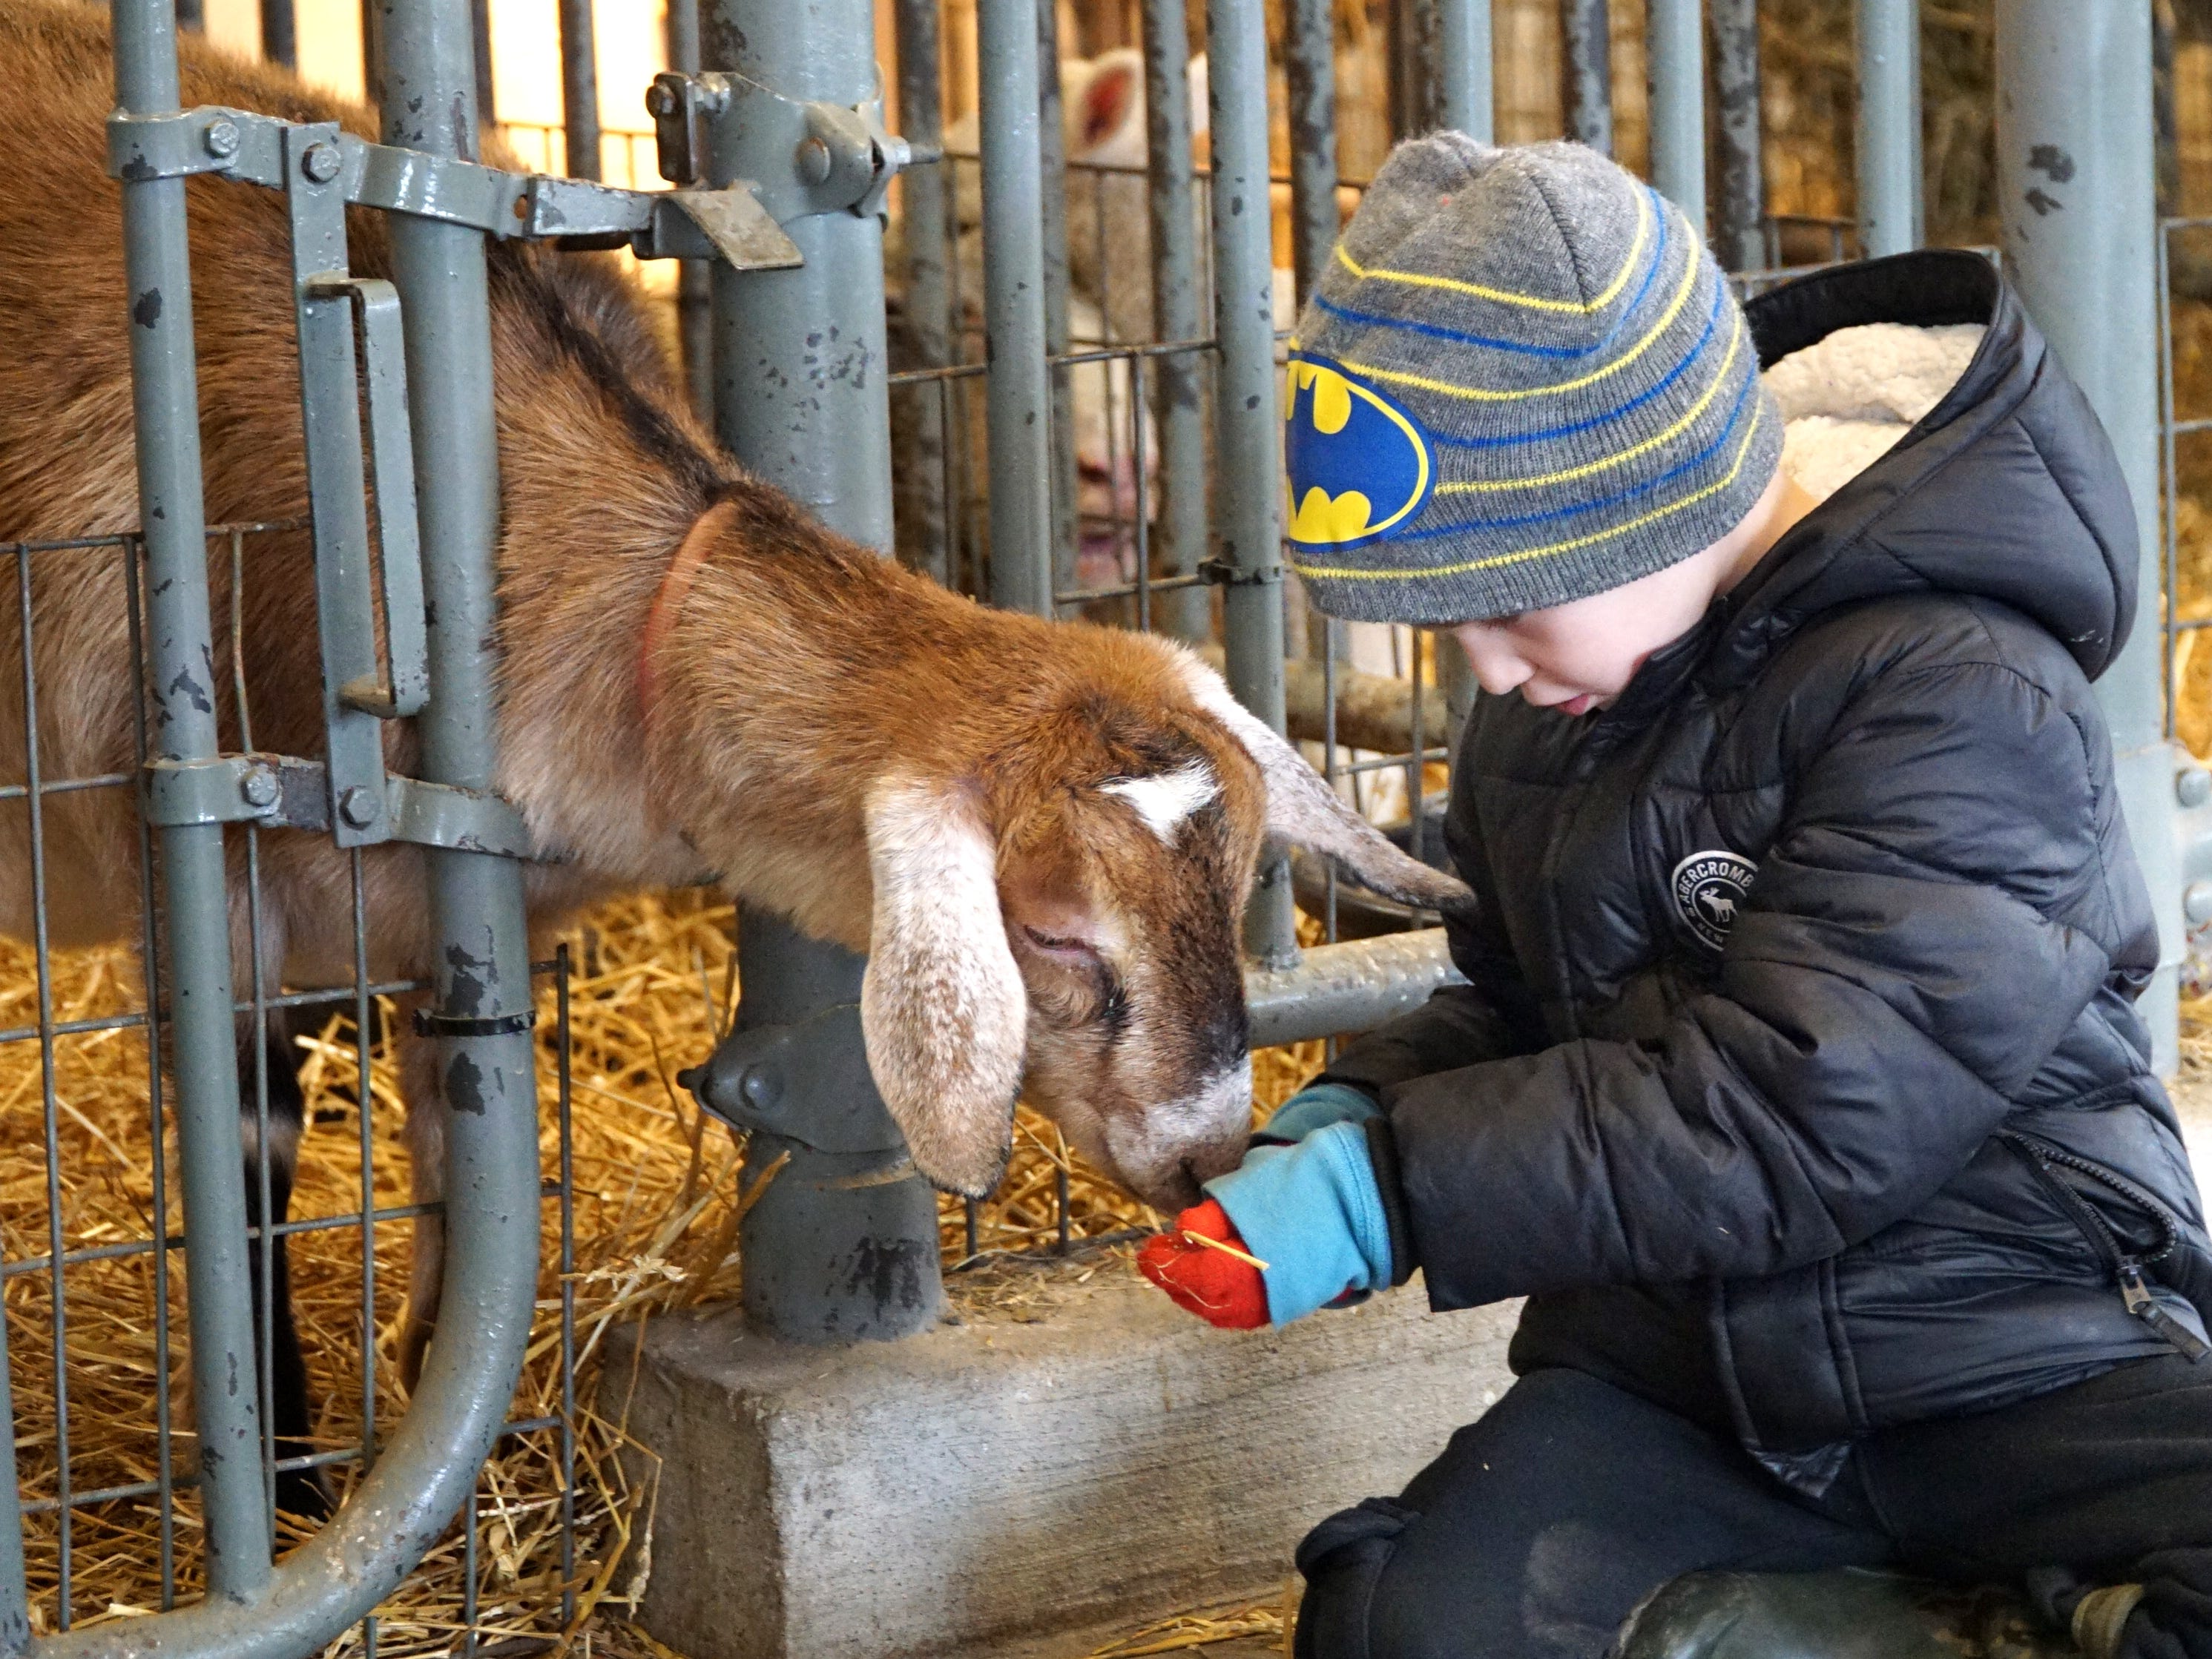 Dominic Corradi, 5, enjoys a moment with a goat at Kensington Farm Center's barn on March 20. Corradi was at the center with his sister Hadley and grandmother Colleen Whitman.